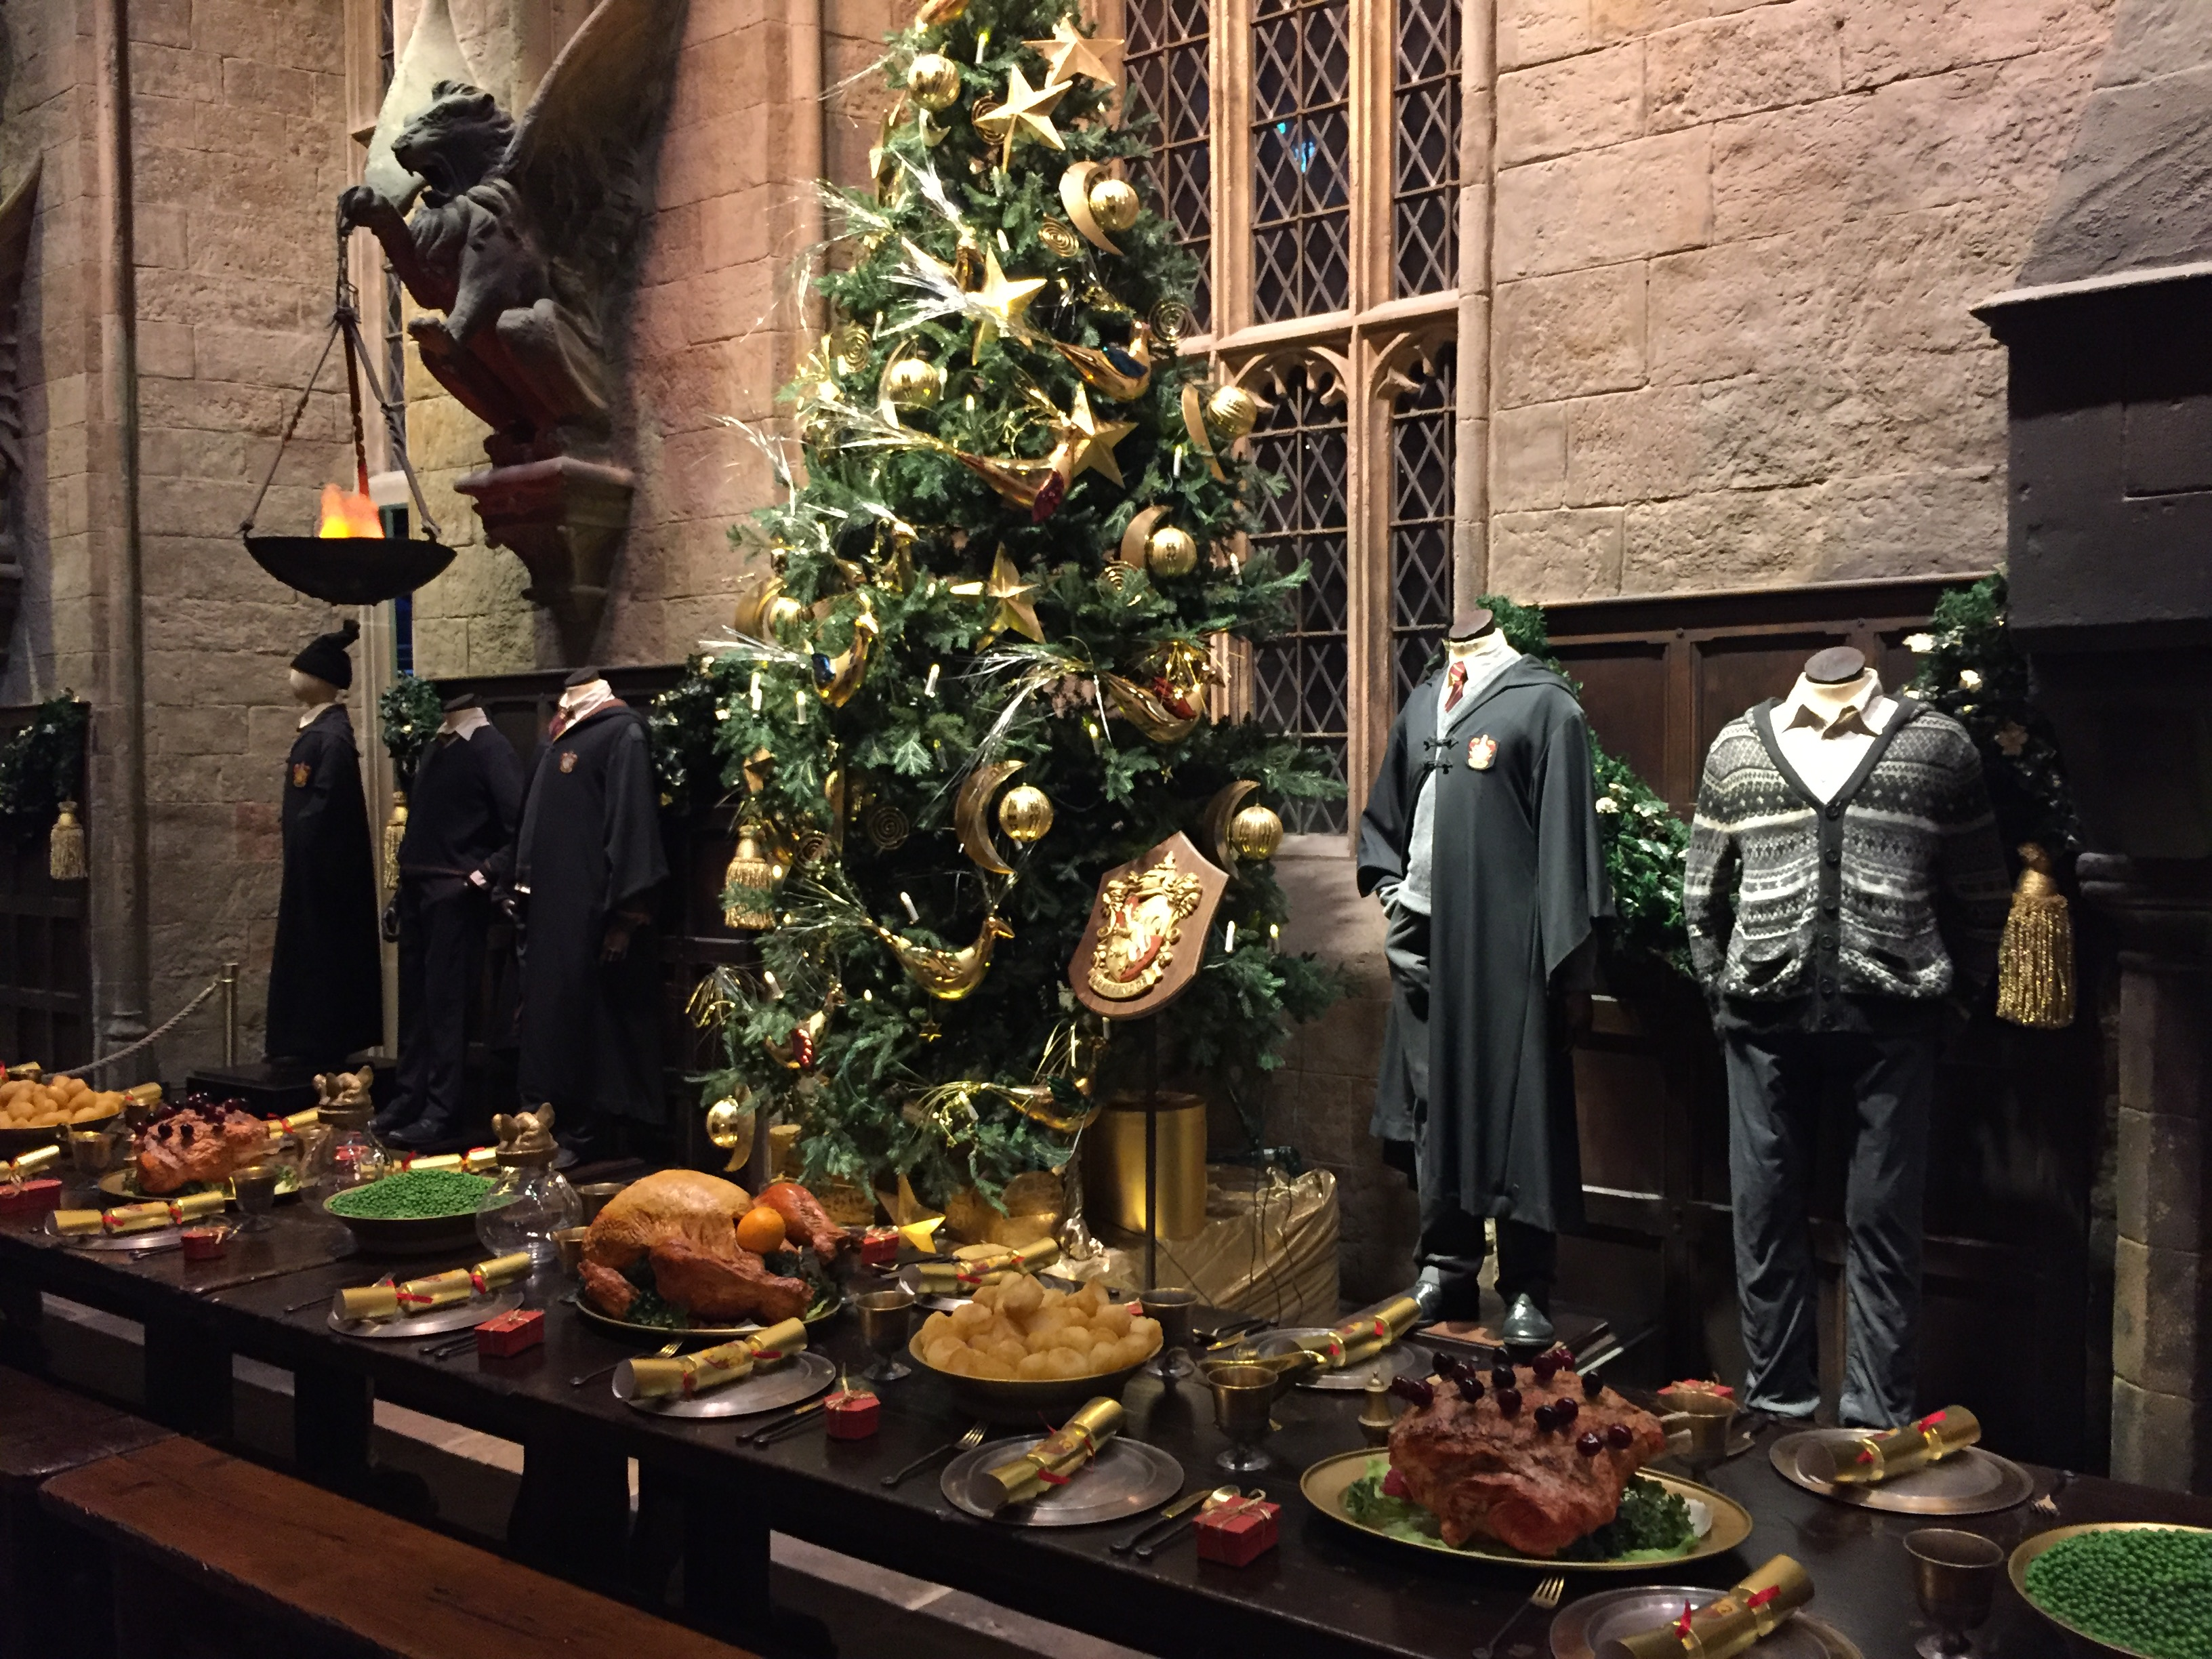 Gryffindor table set for Christmas at Hogwarts in the Snow